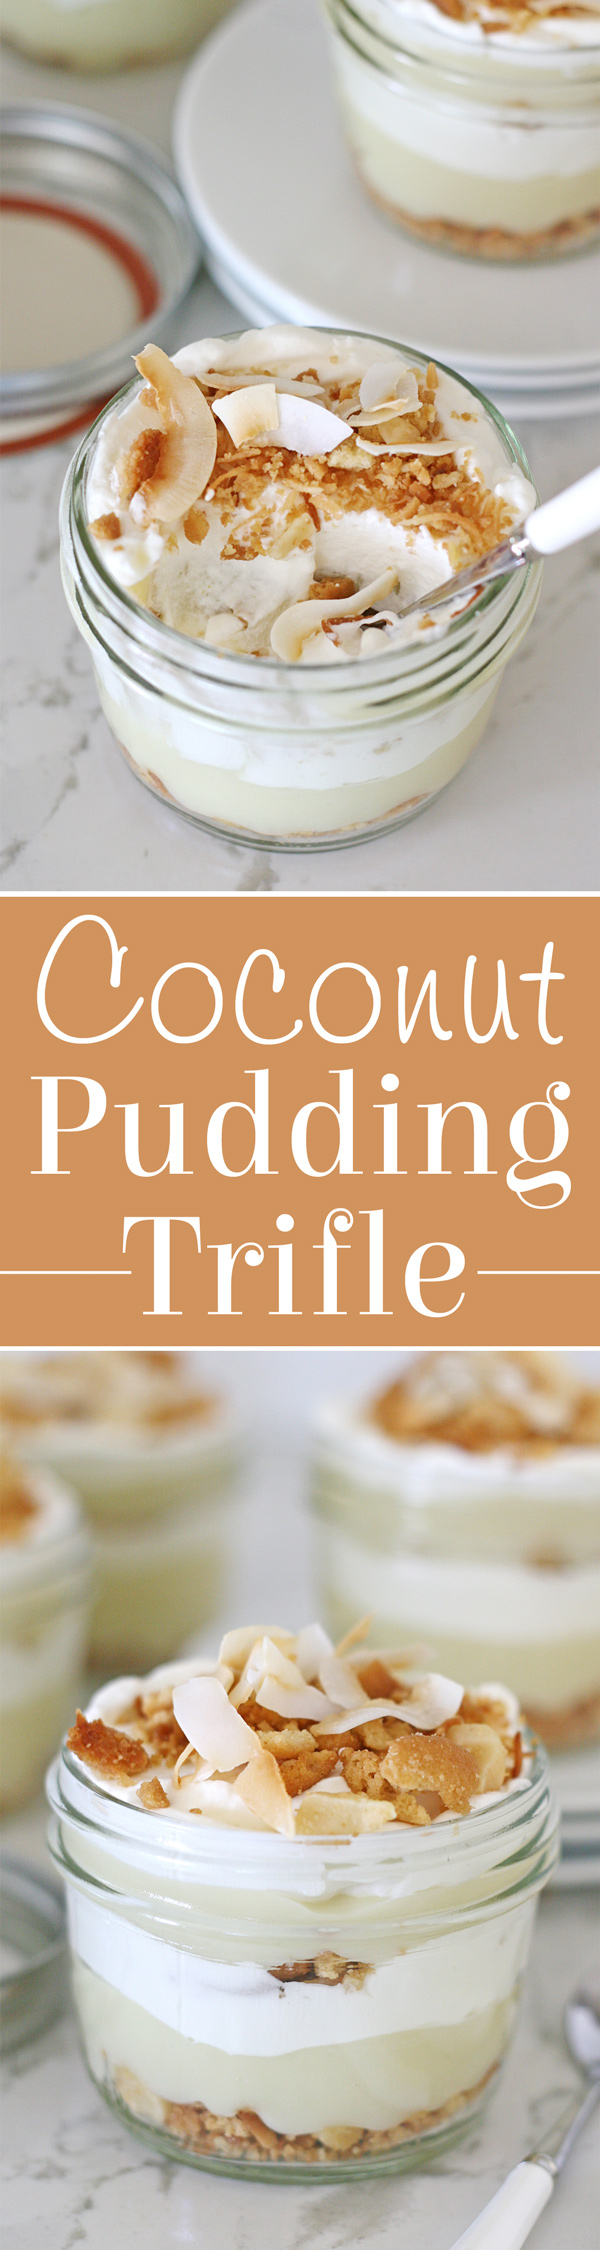 Homemade coconut pudding, whipped cream and a macadamia nut crumble... YUM!